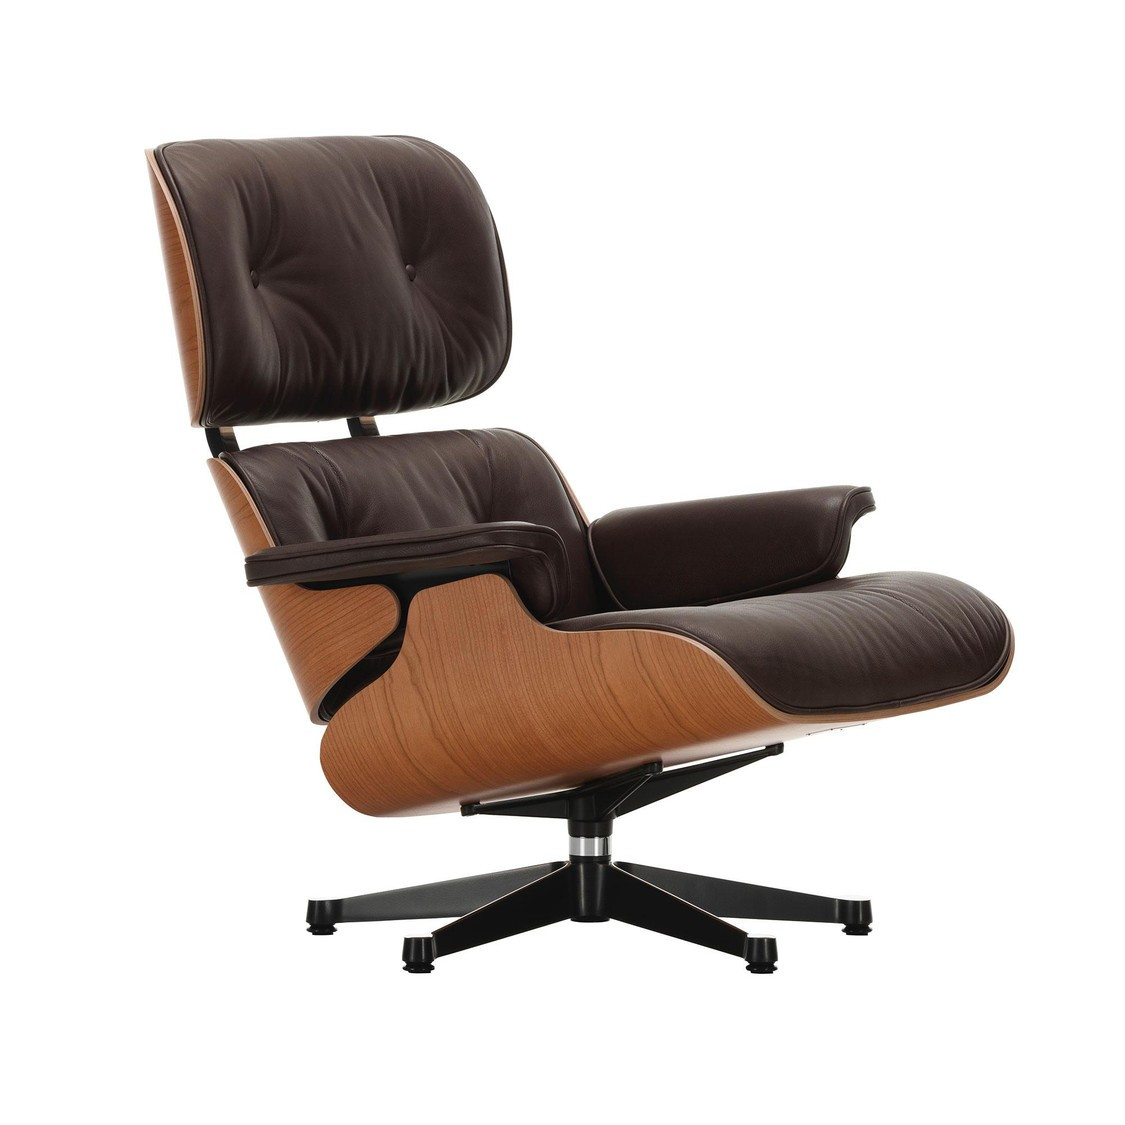 Lounge Drehsessel Vitra Eames Lounge Chair Drehsessel Ambientedirect